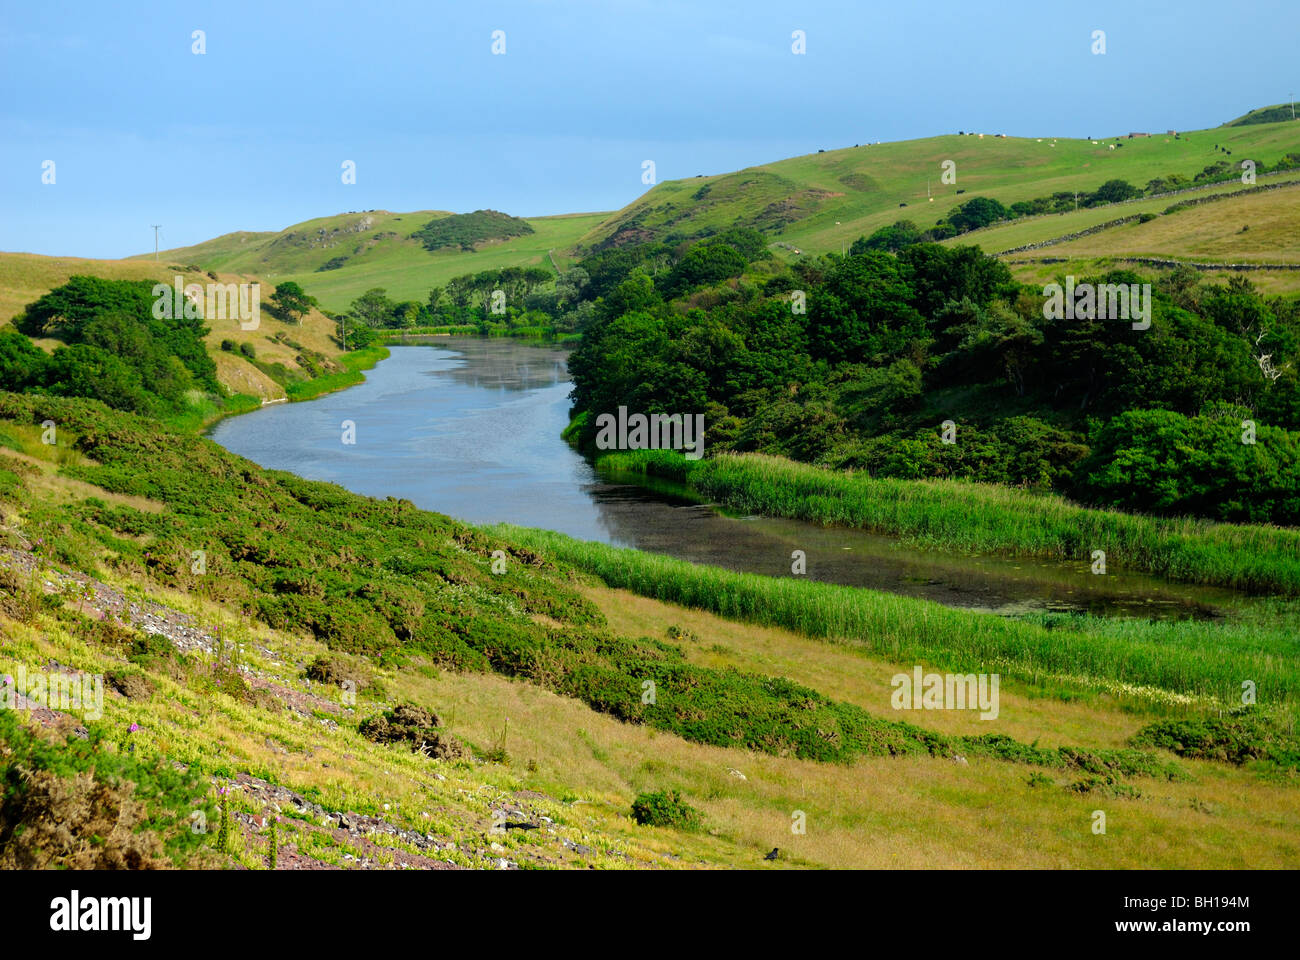 Inland loch at St Abbs Head, Borders, Scotland - Stock Image